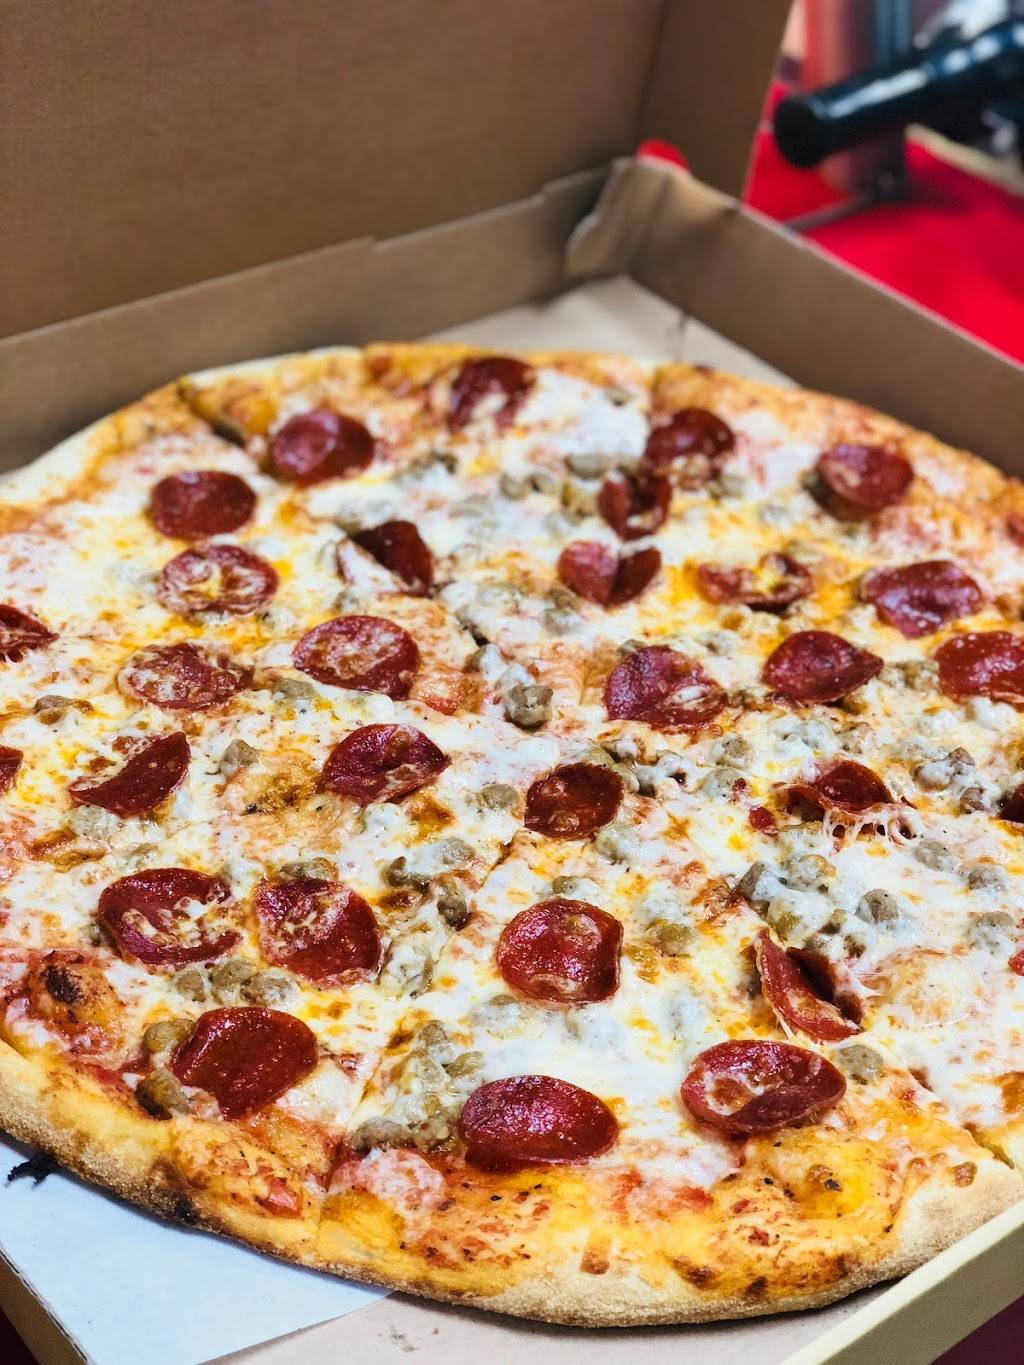 Crown Fried Chicken & Pizza | meal delivery | 235 Ralph Ave, Brooklyn, NY 11233, USA | 7189191700 OR +1 718-919-1700